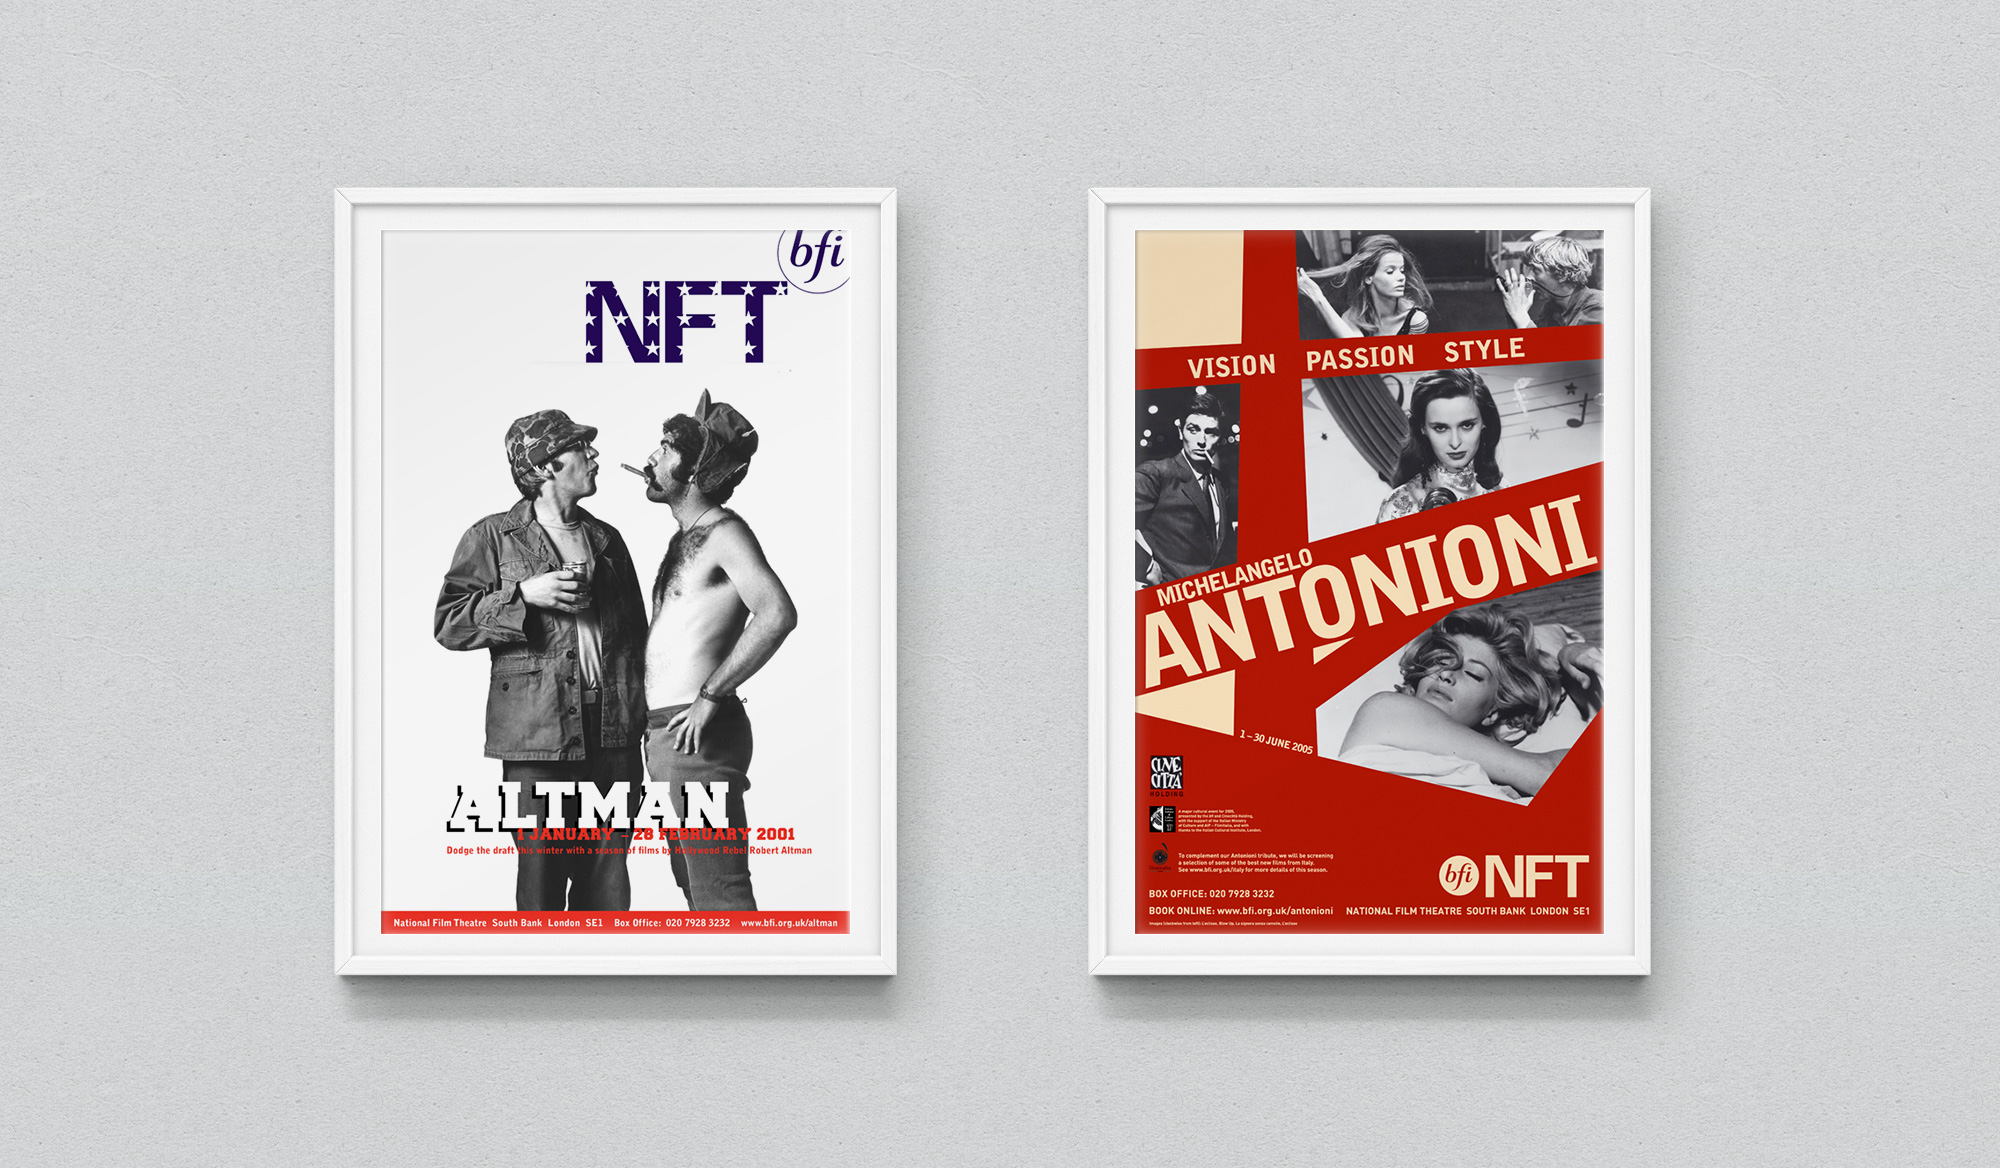 altman-antonioni-posters-background